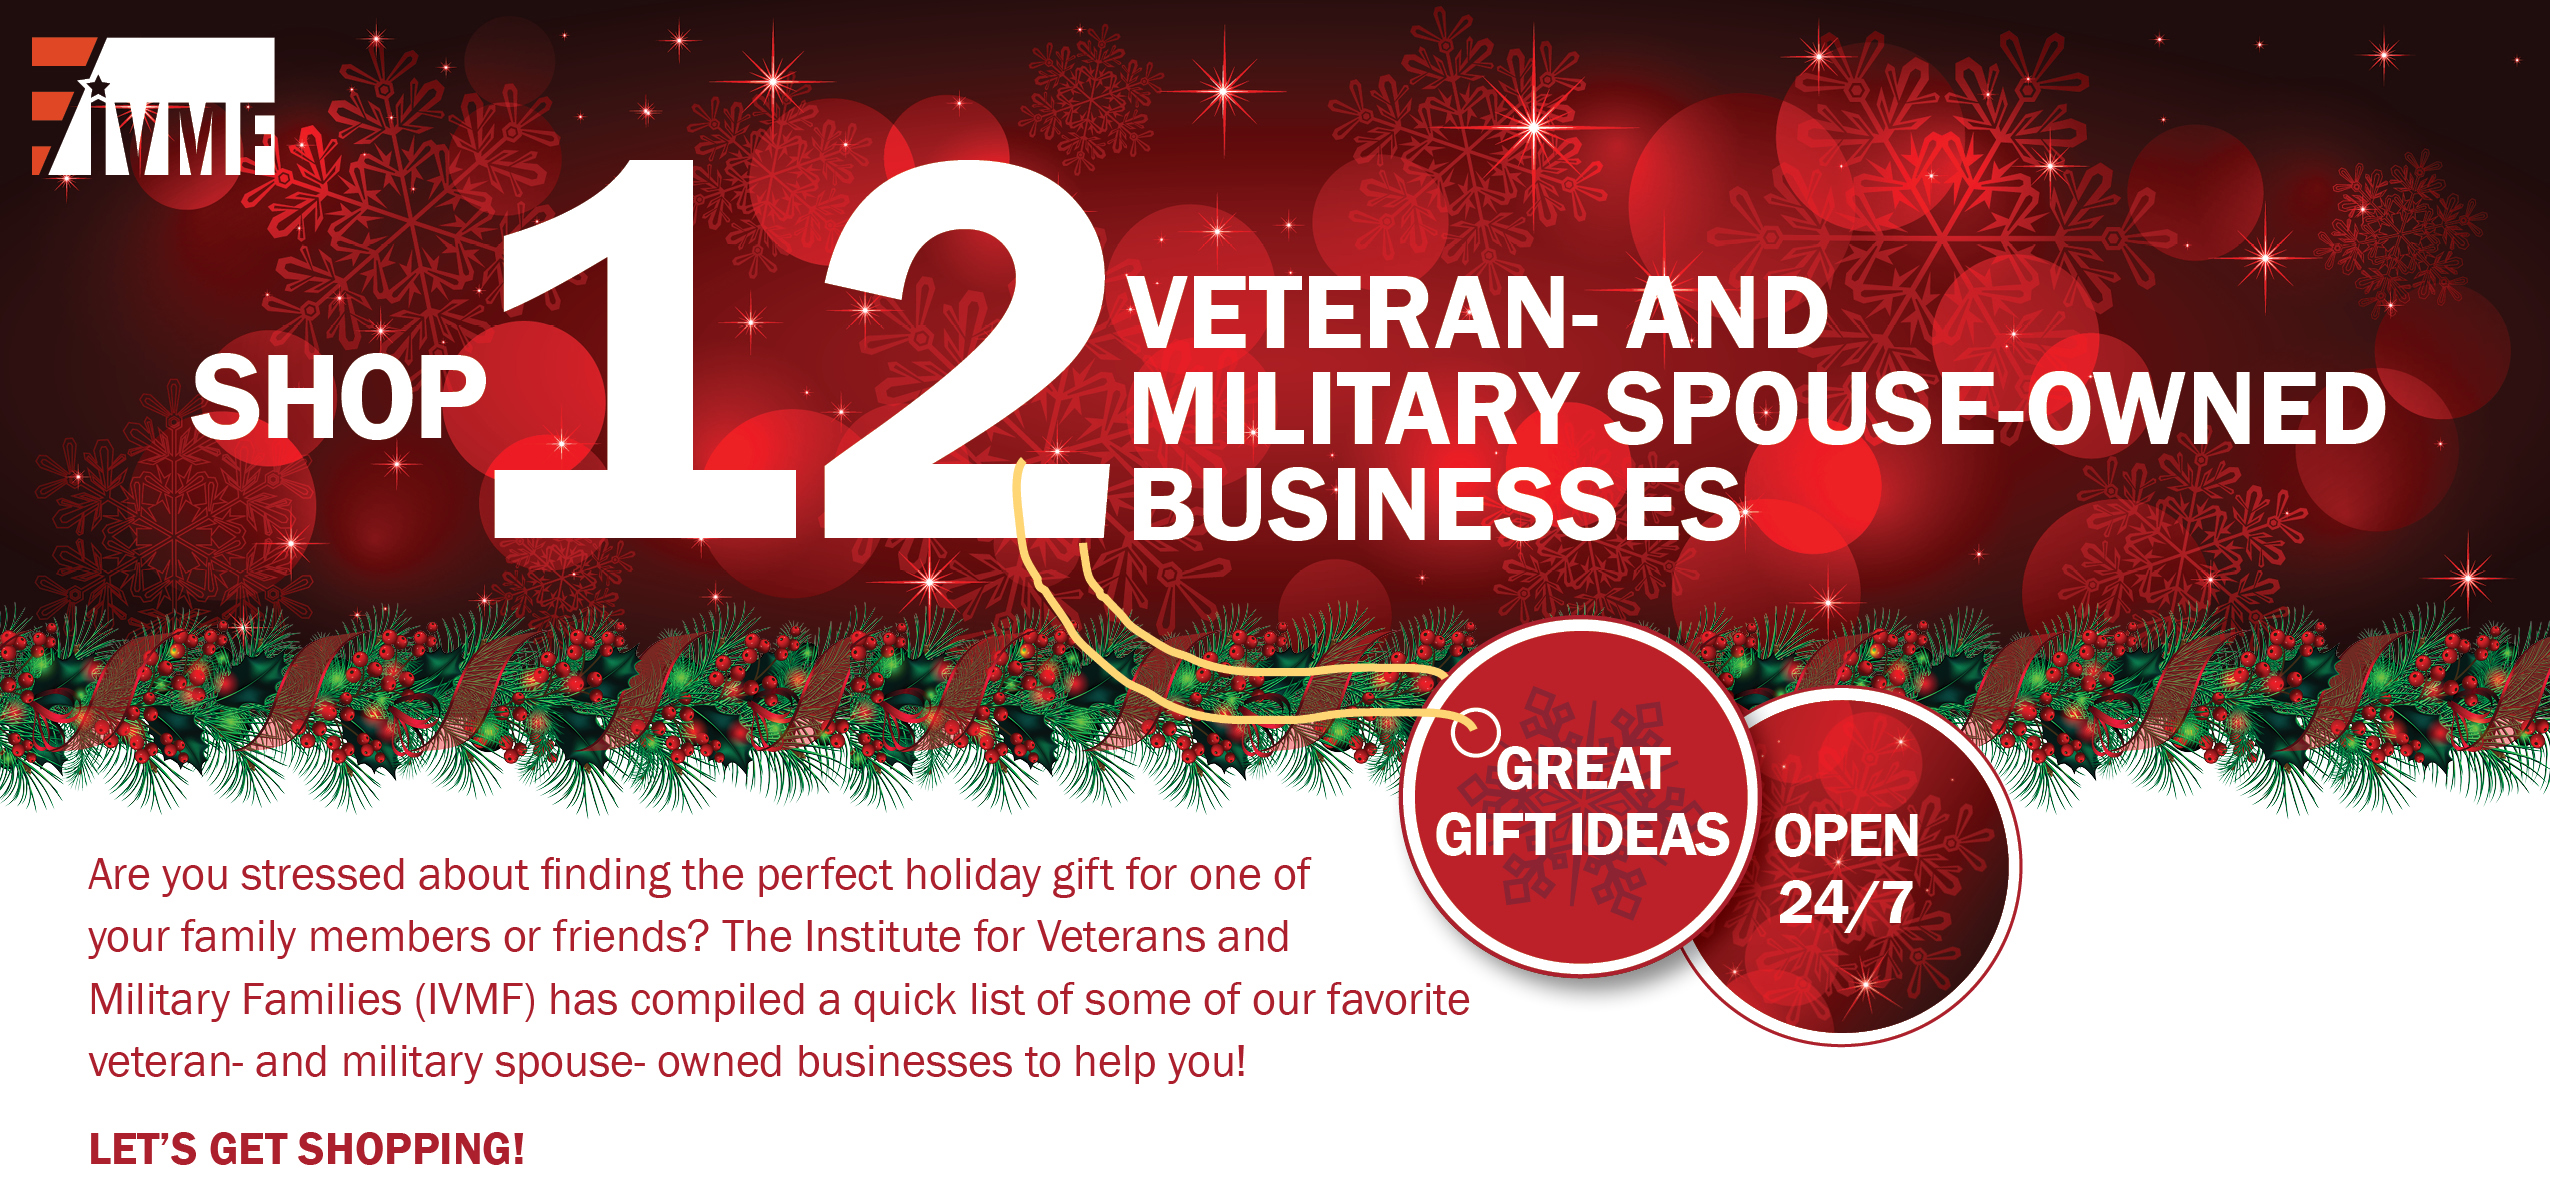 Veteran and Military Spouse-Owned Businesses